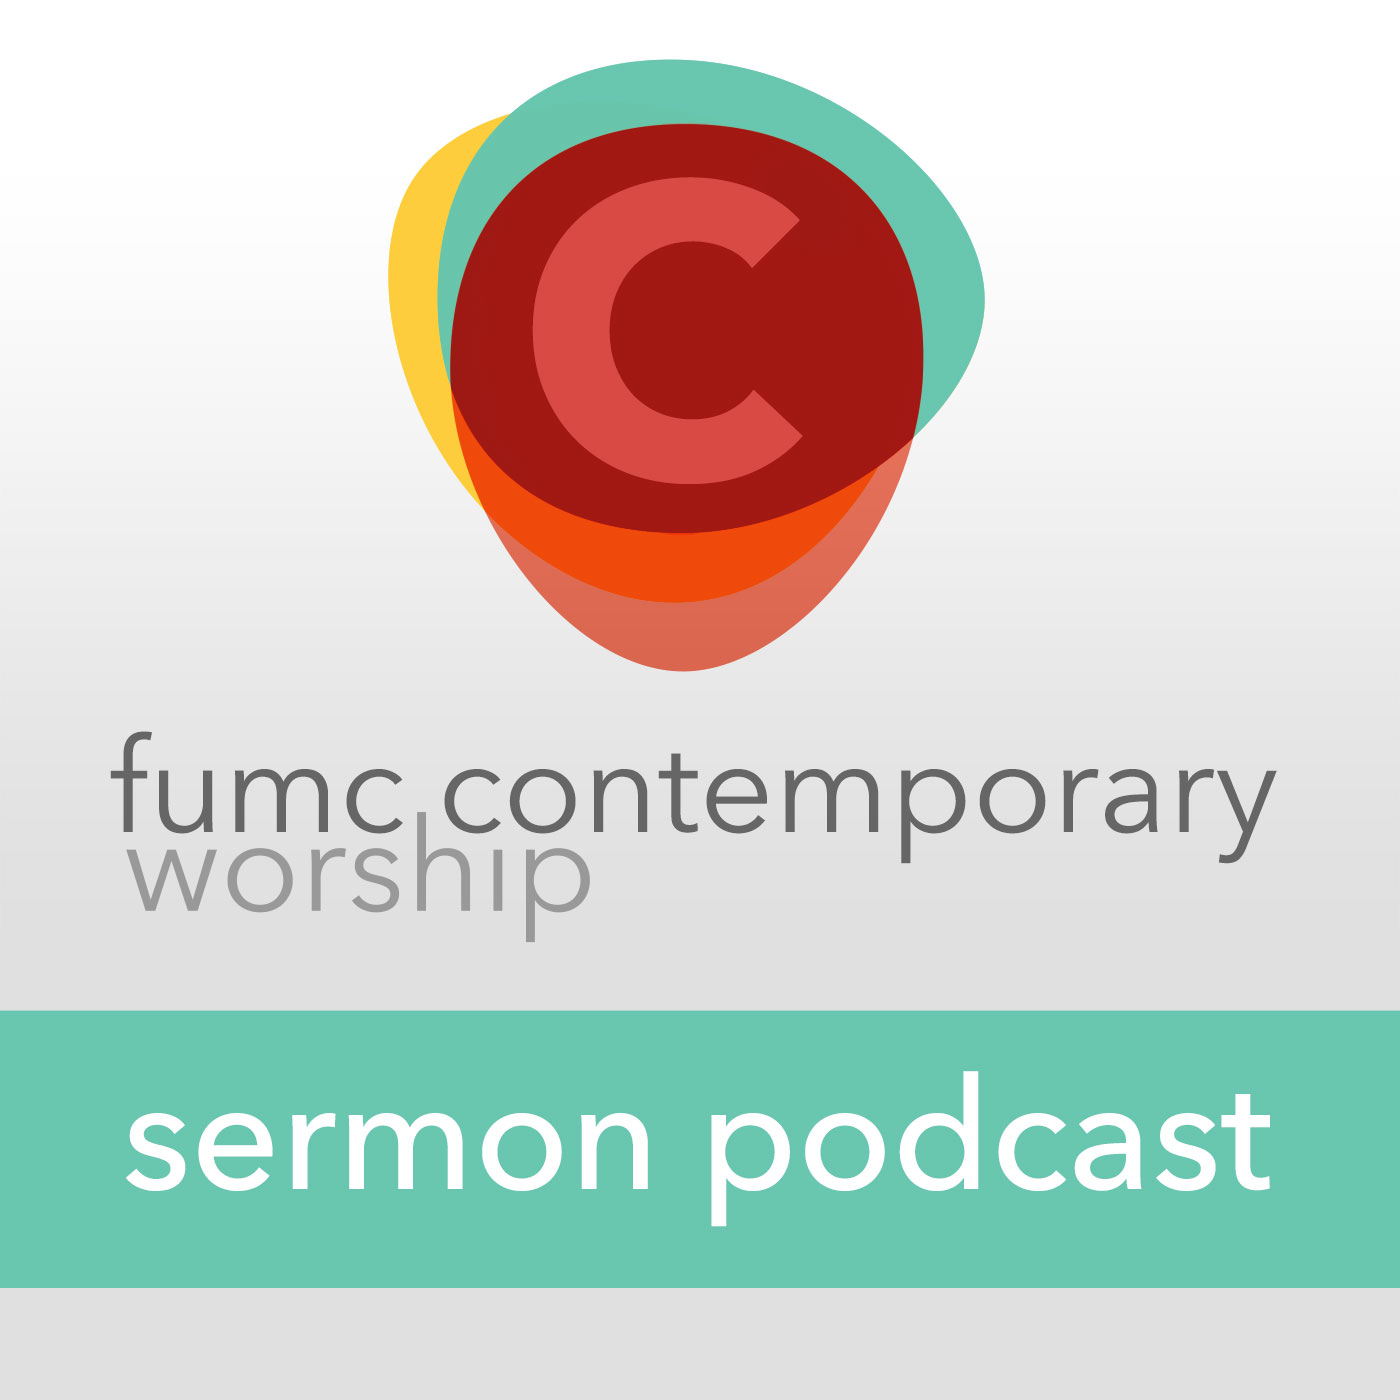 FUMC Contemporary Podcast - First United Methodist Church